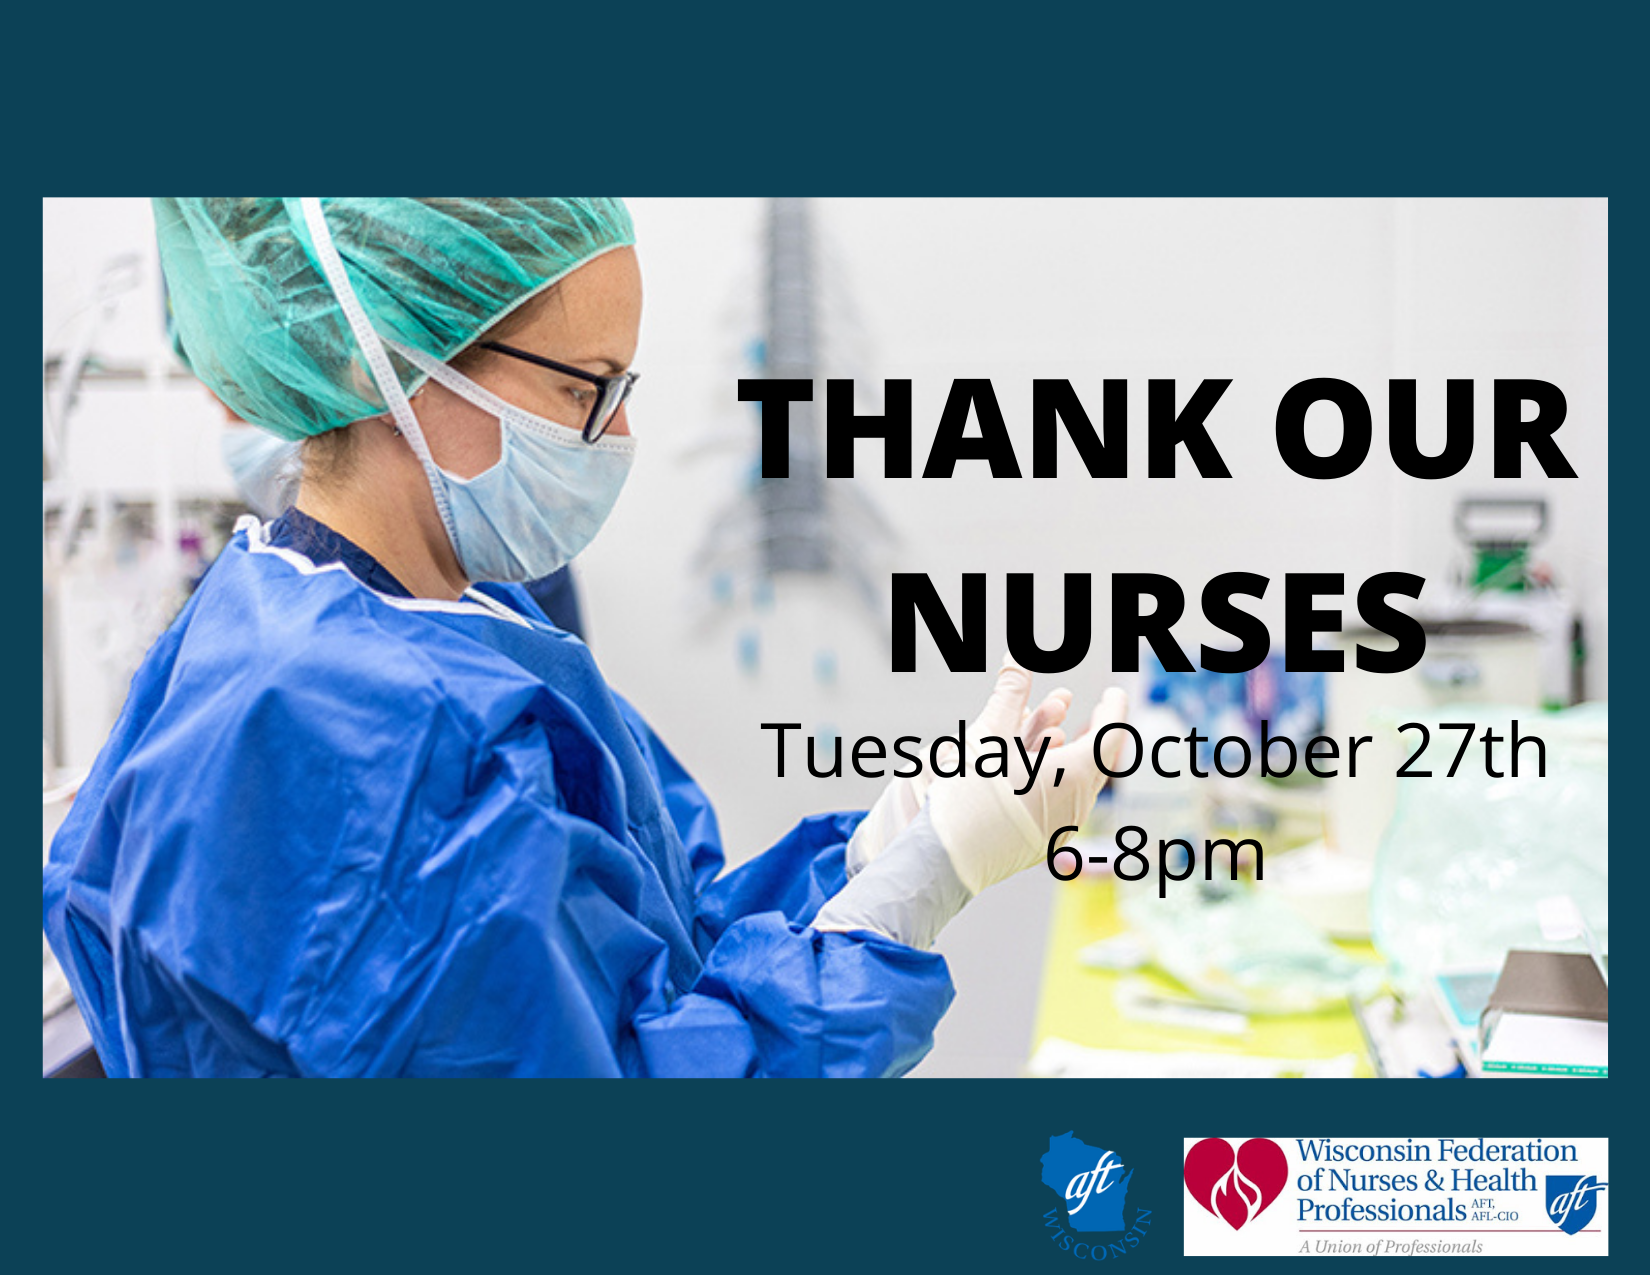 Thank Our Nurses: Tuesday, October 27th, 6-8pm